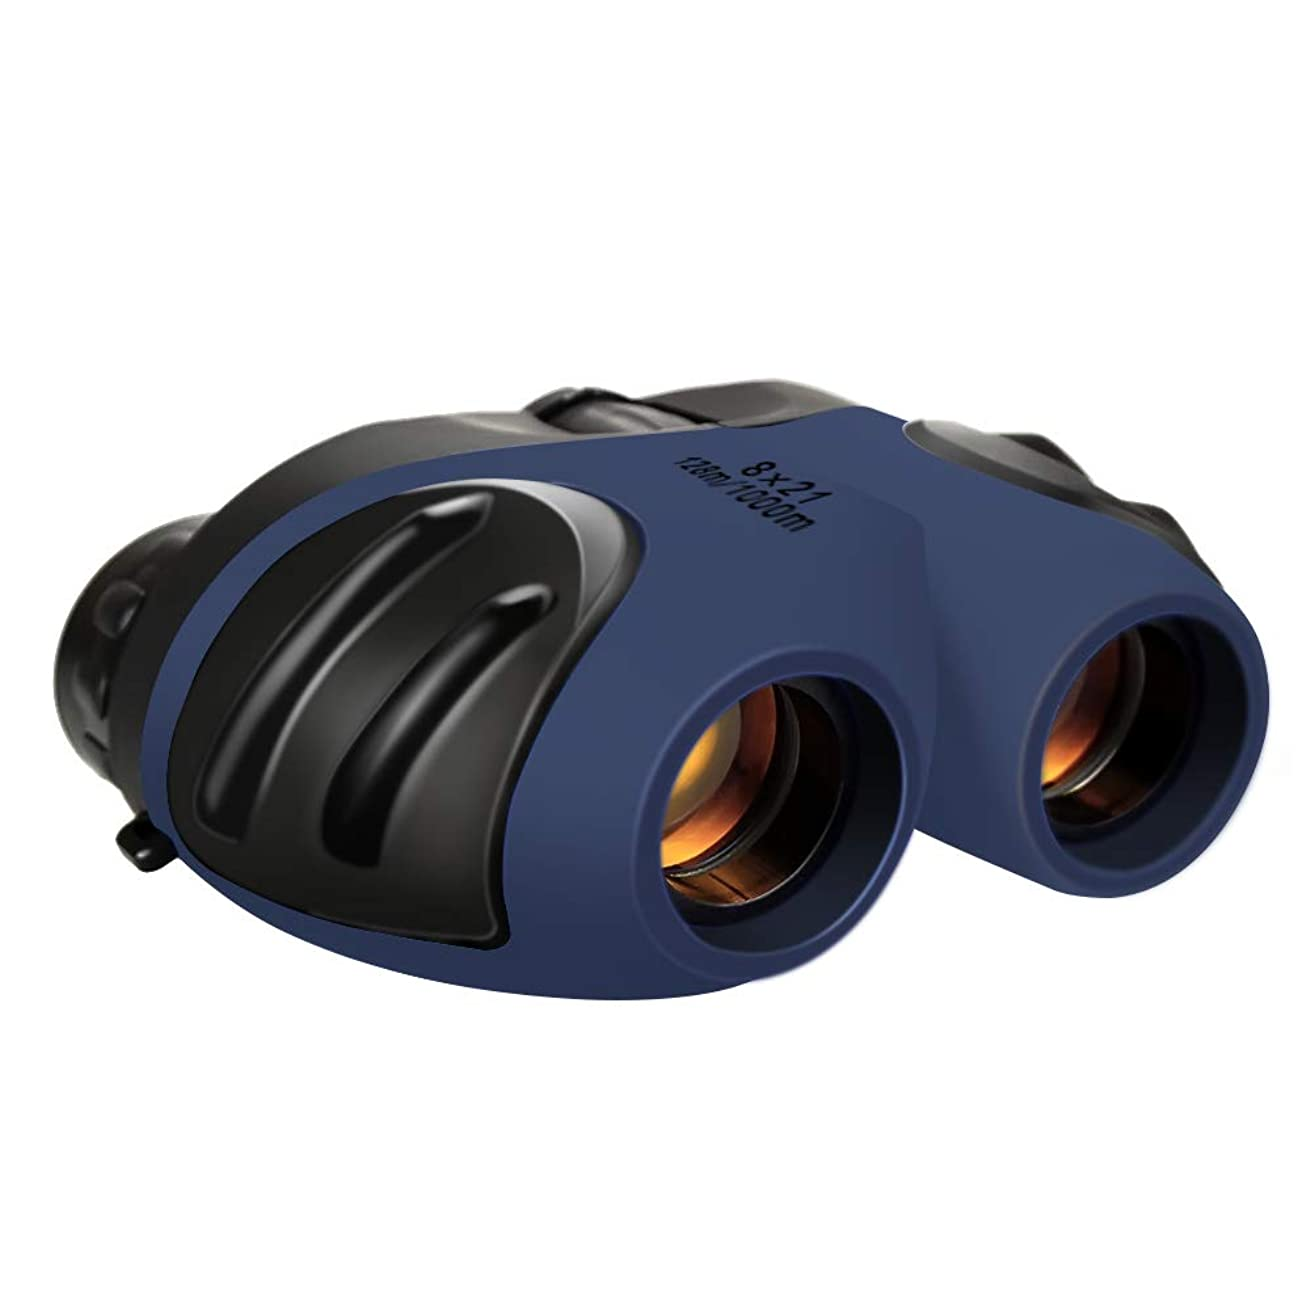 Dreamingbox Compact Shock Proof Binoculars for Kids -Best Gifts